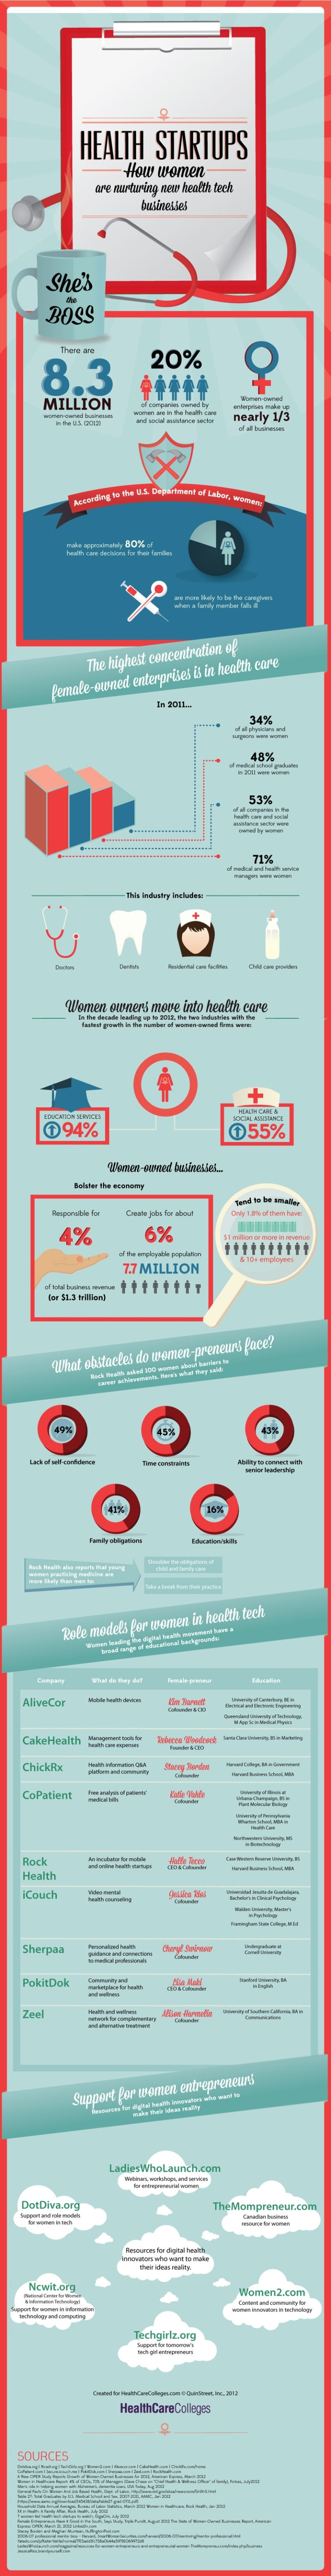 How Women Are Leading the Digital Health Startup Revolution Infographic